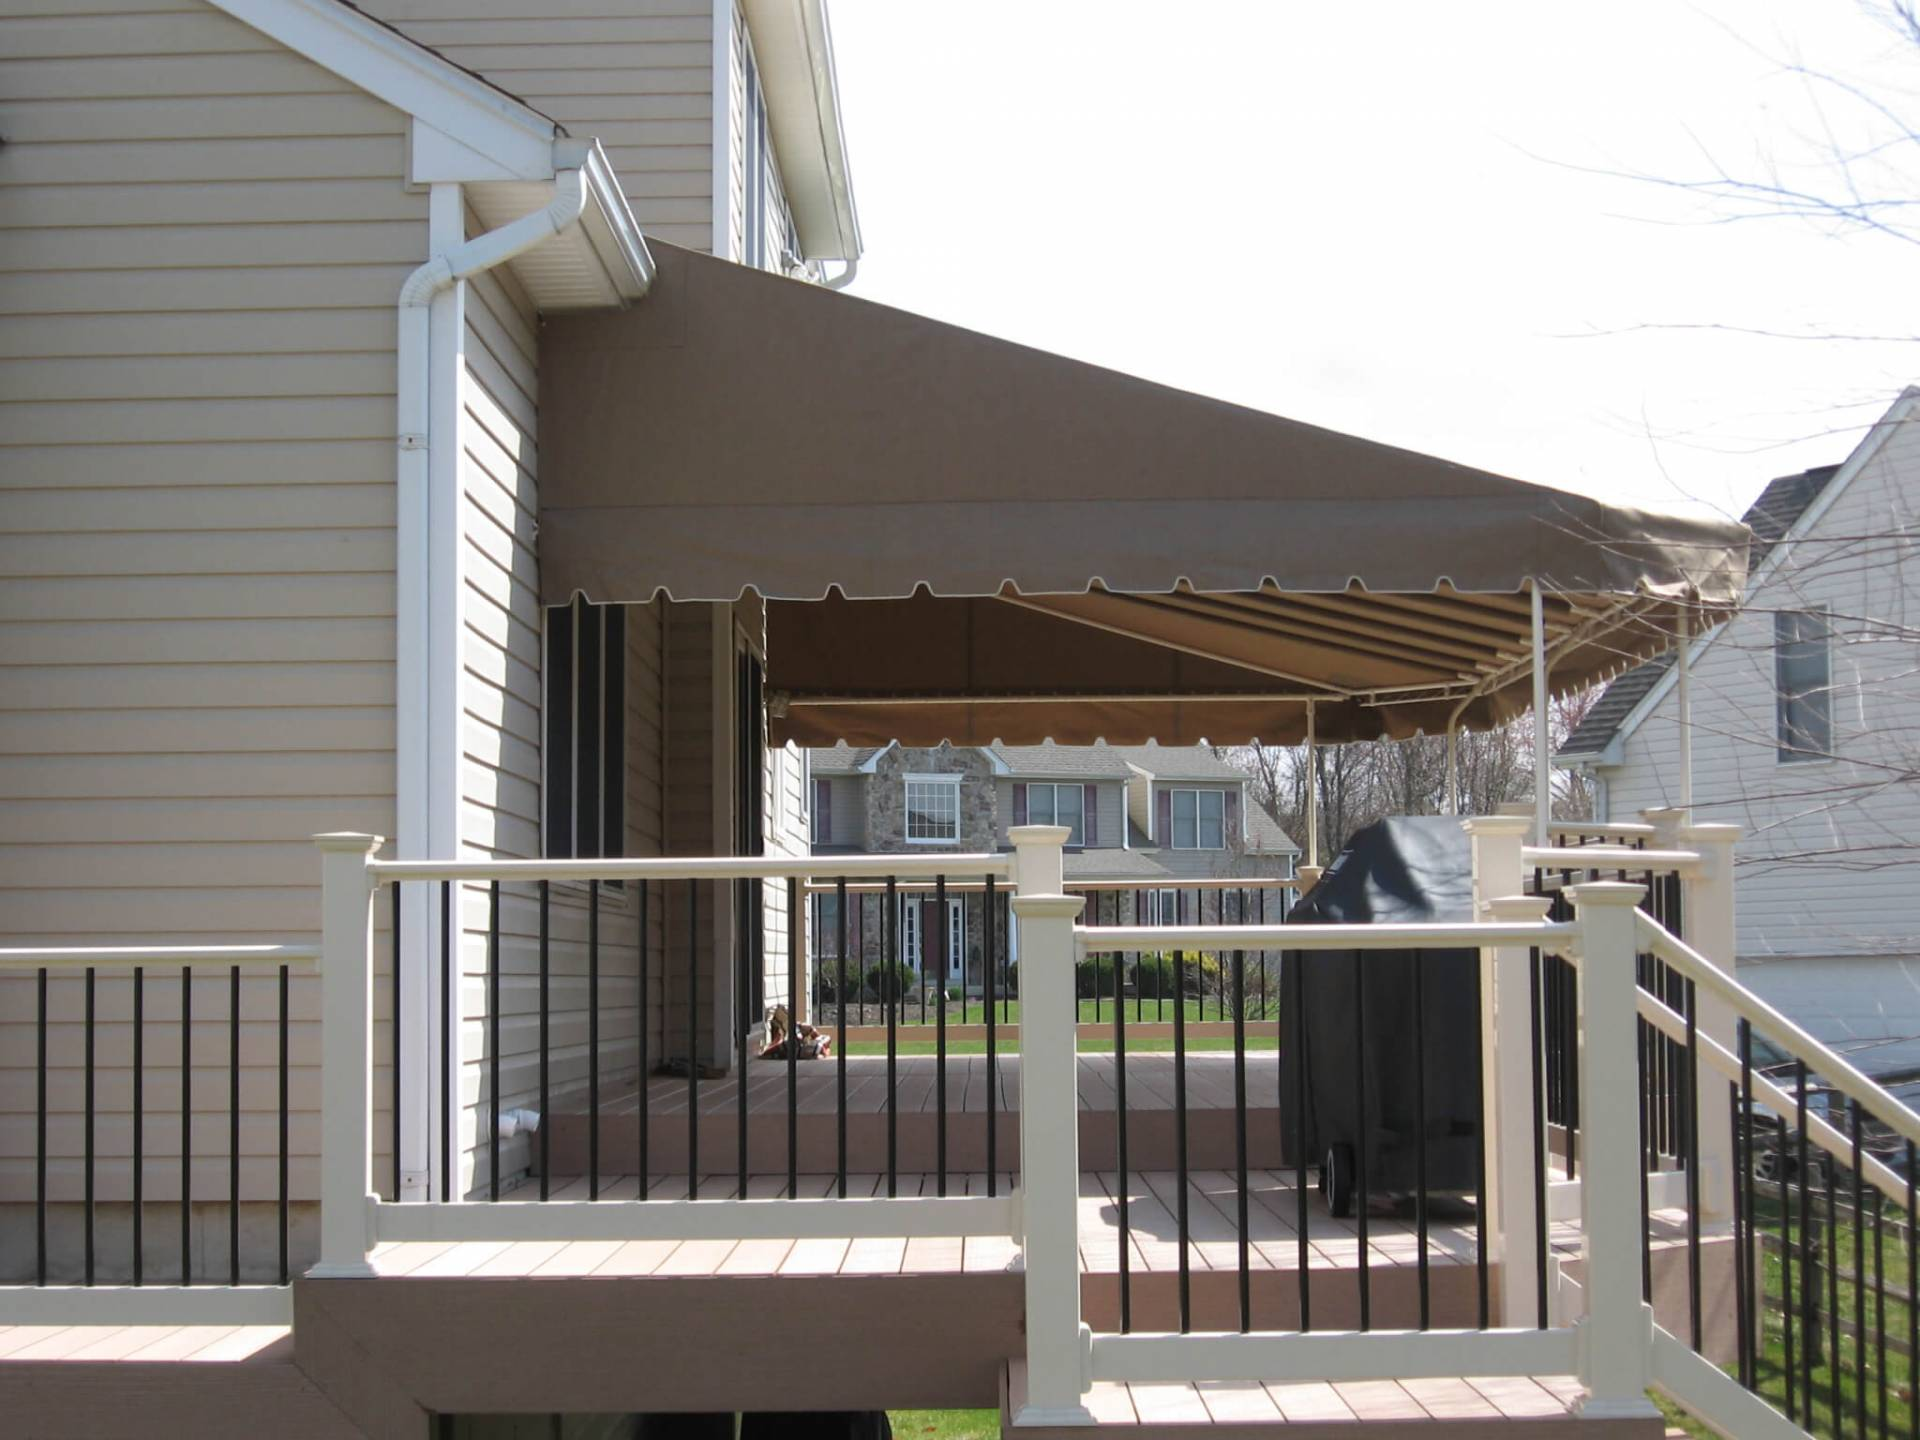 custom awning fans deck ceiling powder a and large frame coated featuring pin